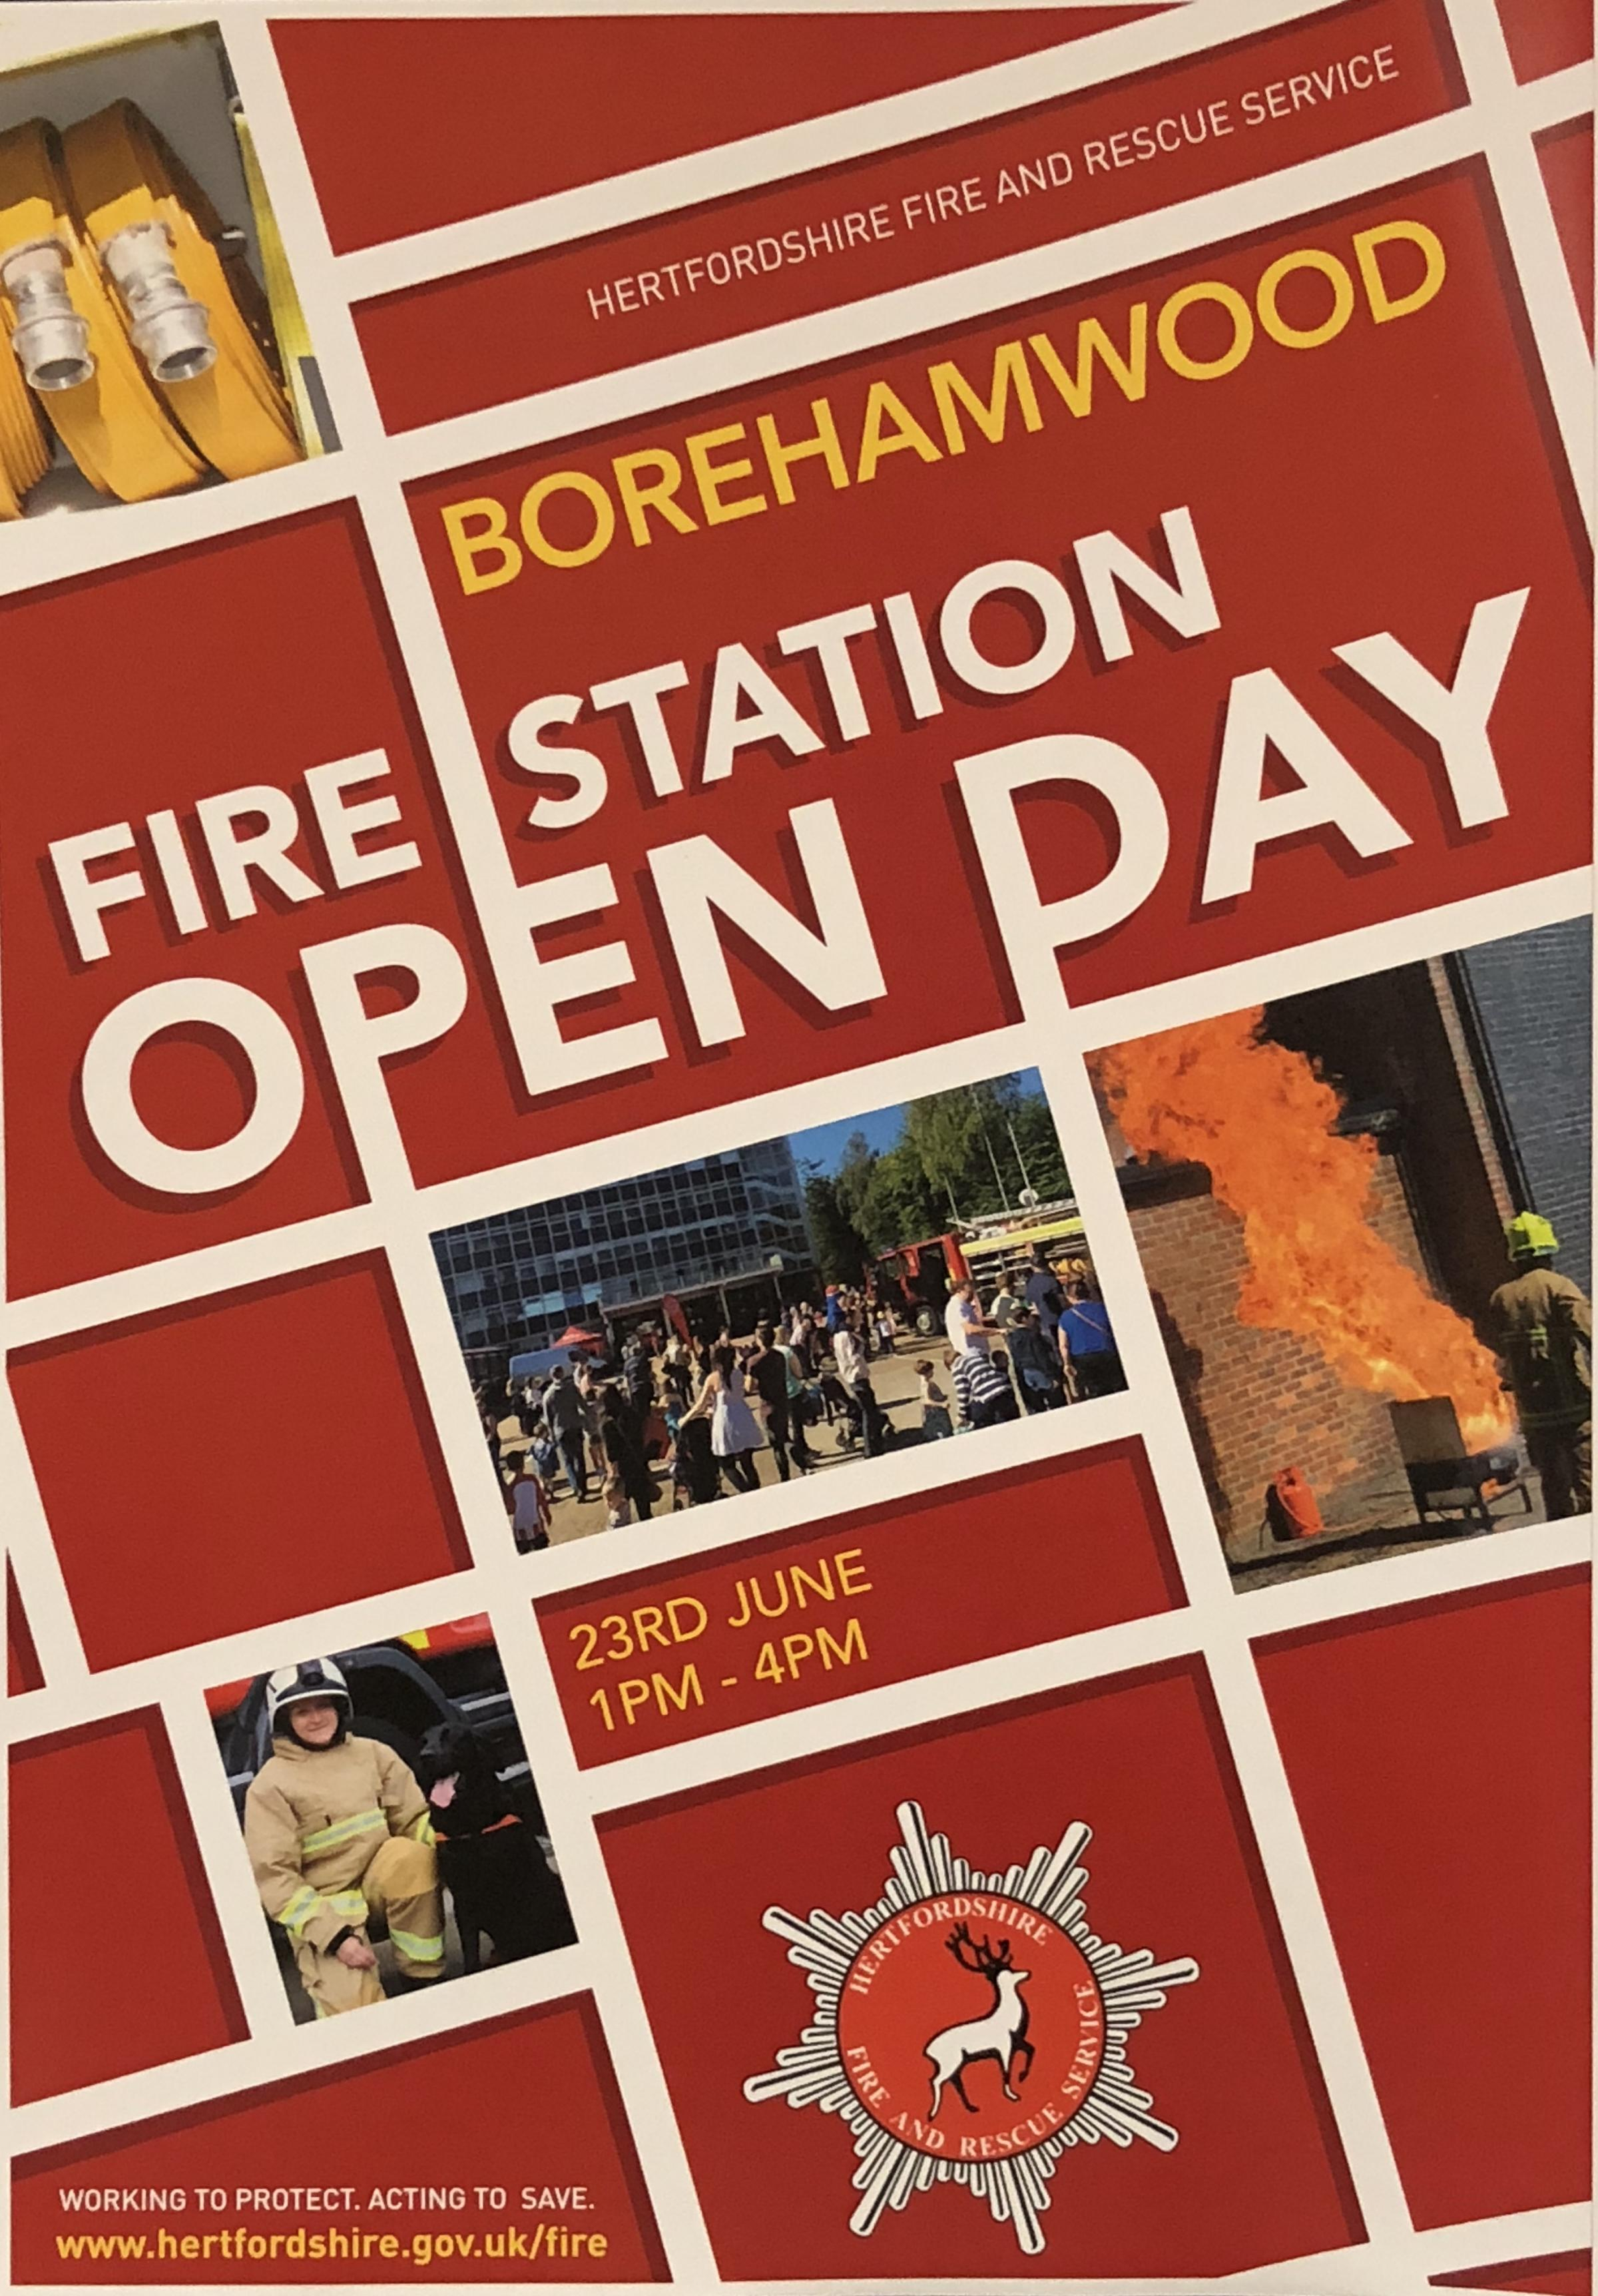 Borehamwood Fire Station Open Day